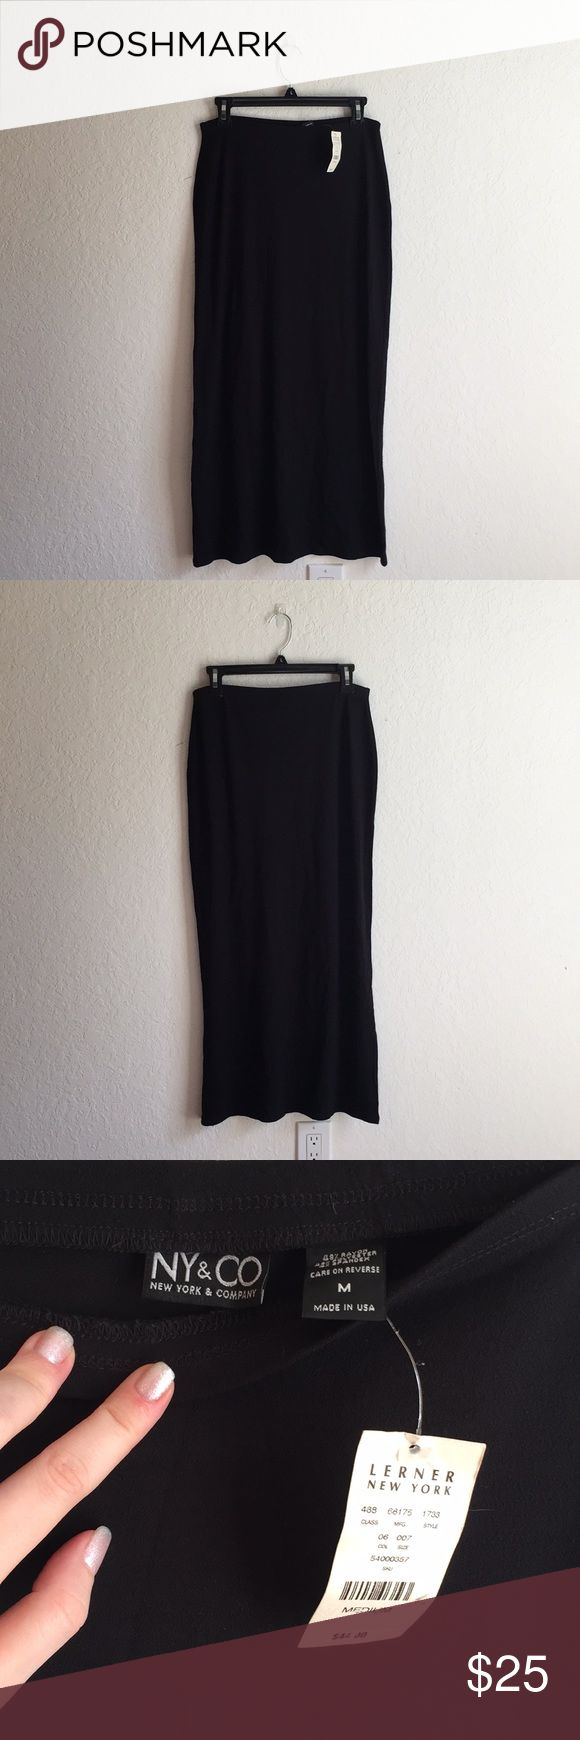 NWT Black maxi skirt long!!! So cute!! :) NY & CO NWT Black maxi skirt!! :) New York & Company!!   Perfect with a fun tight top and wedges or boots for Fall!! :)   Feel free to ask any questions. :) New York & Company Skirts Maxi